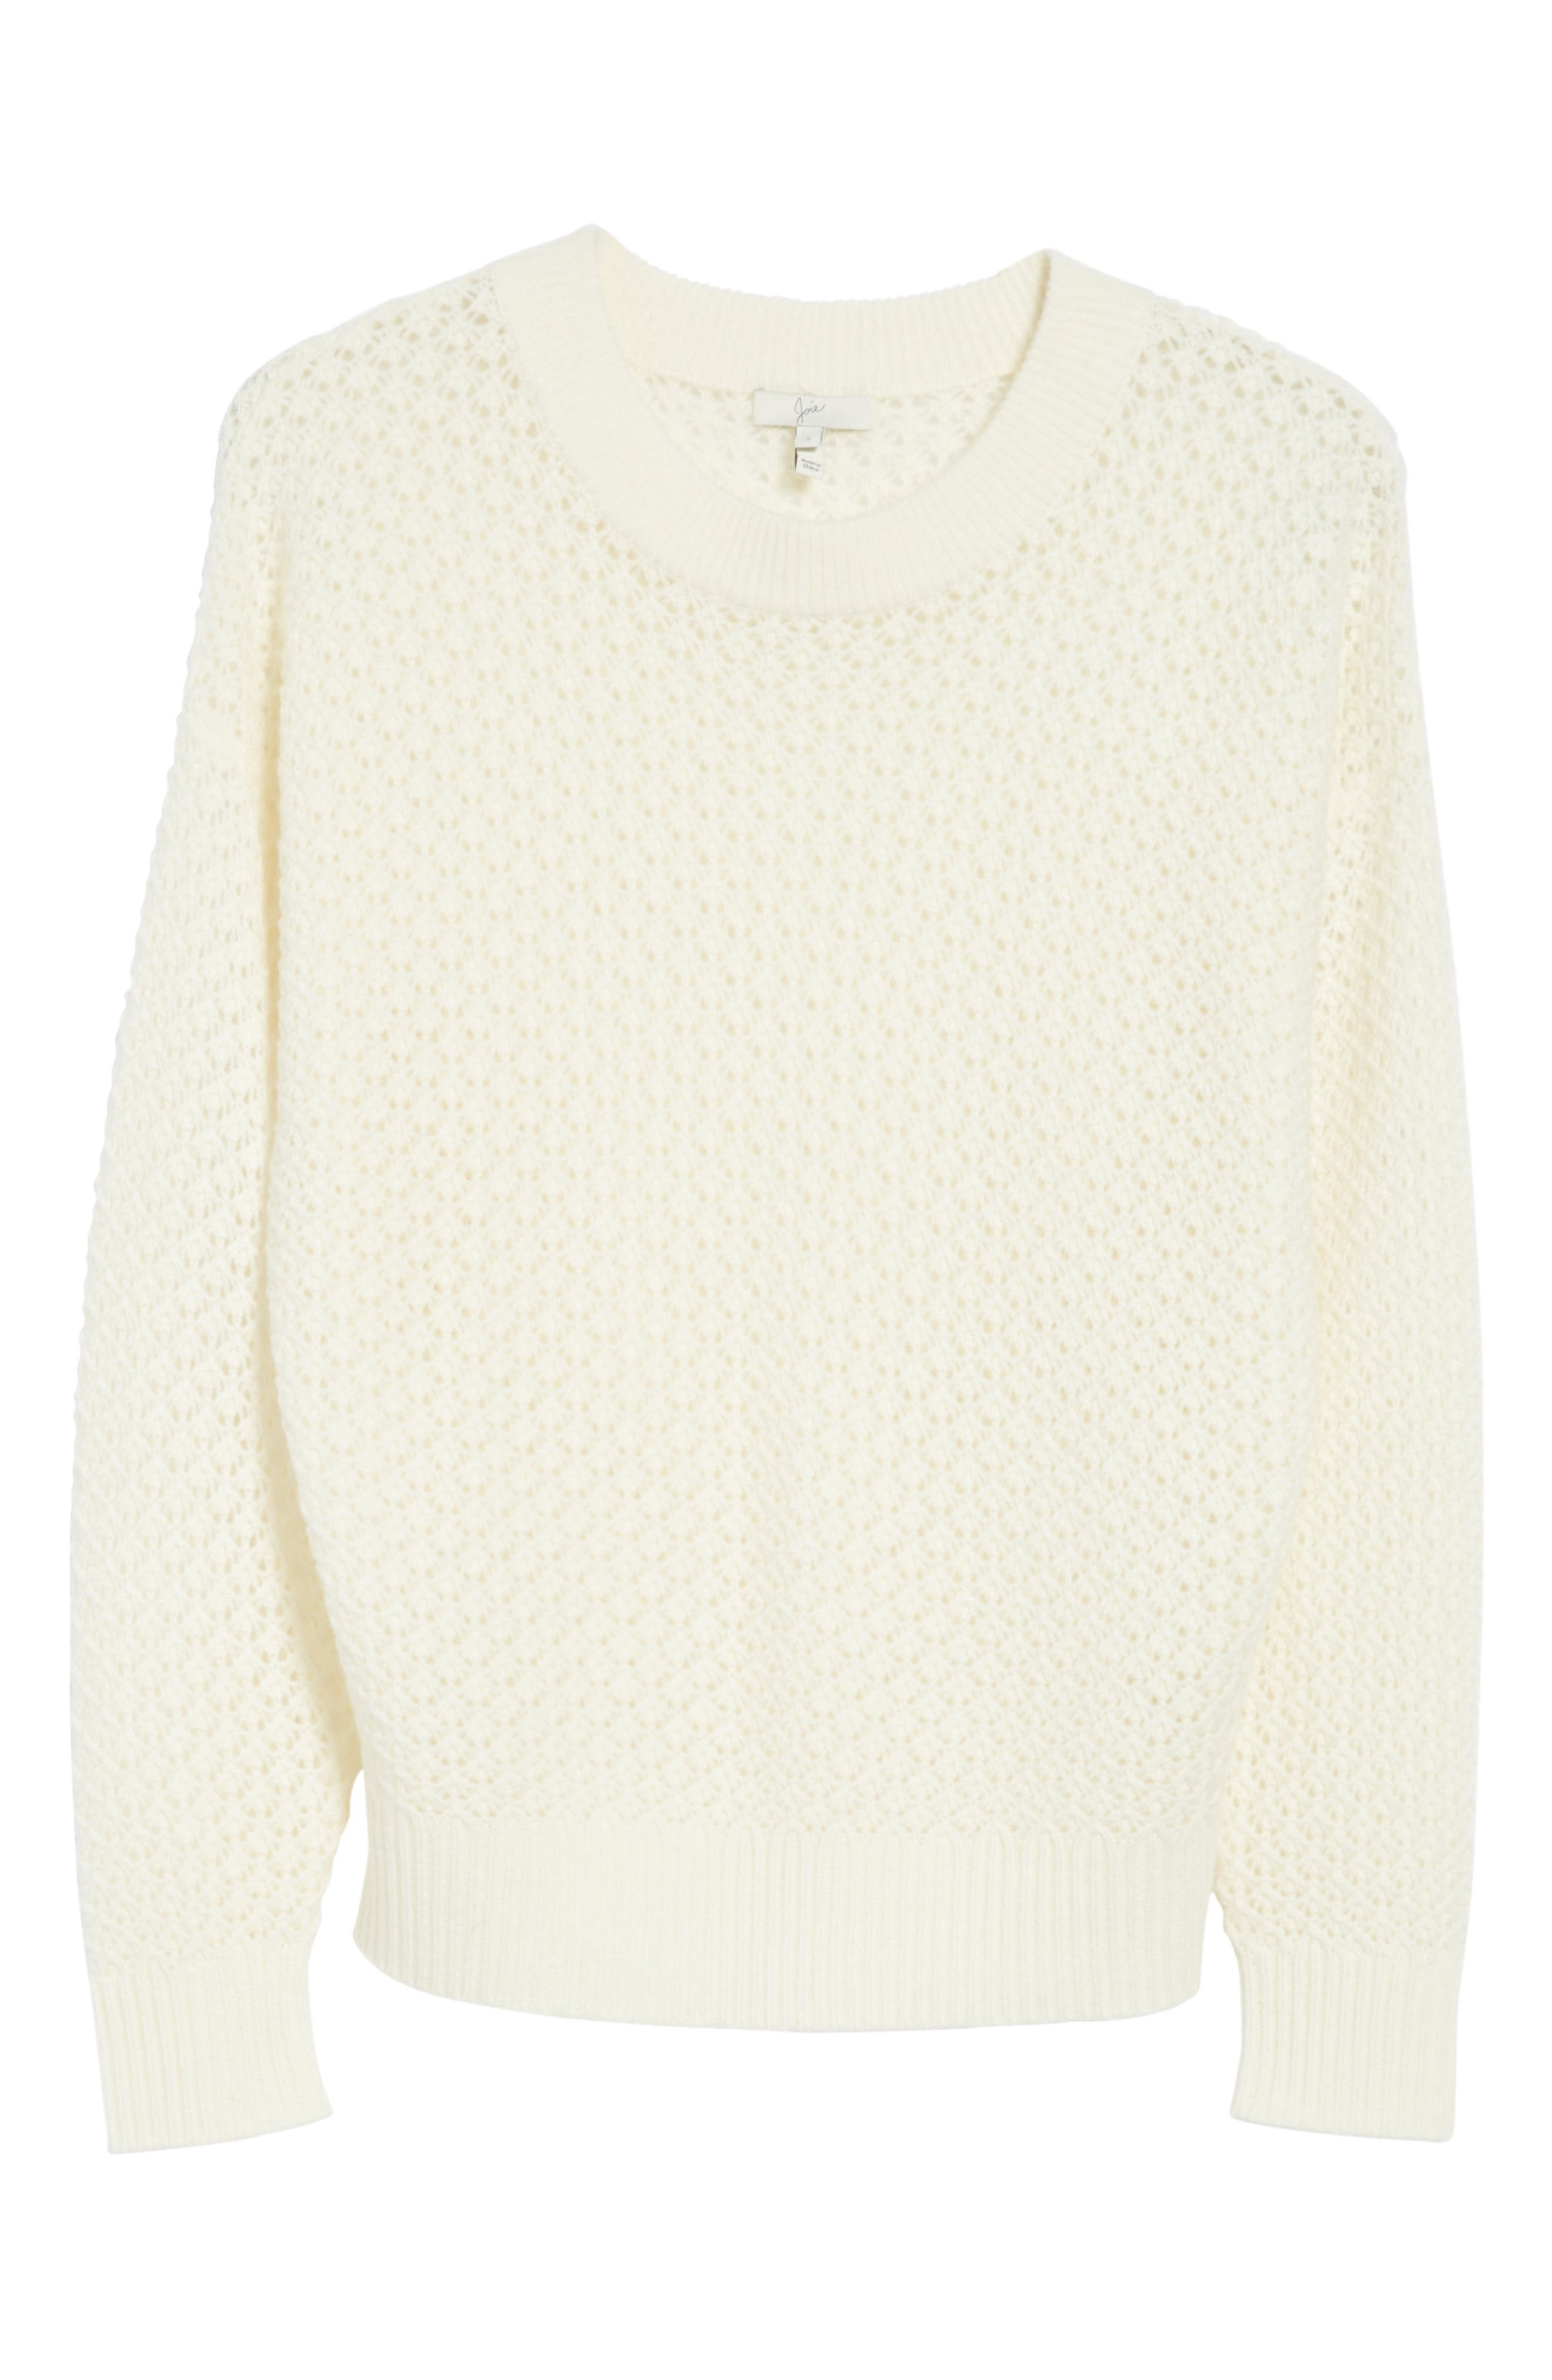 Vedis Wool & Cashmere Sweater,                             Alternate thumbnail 6, color,